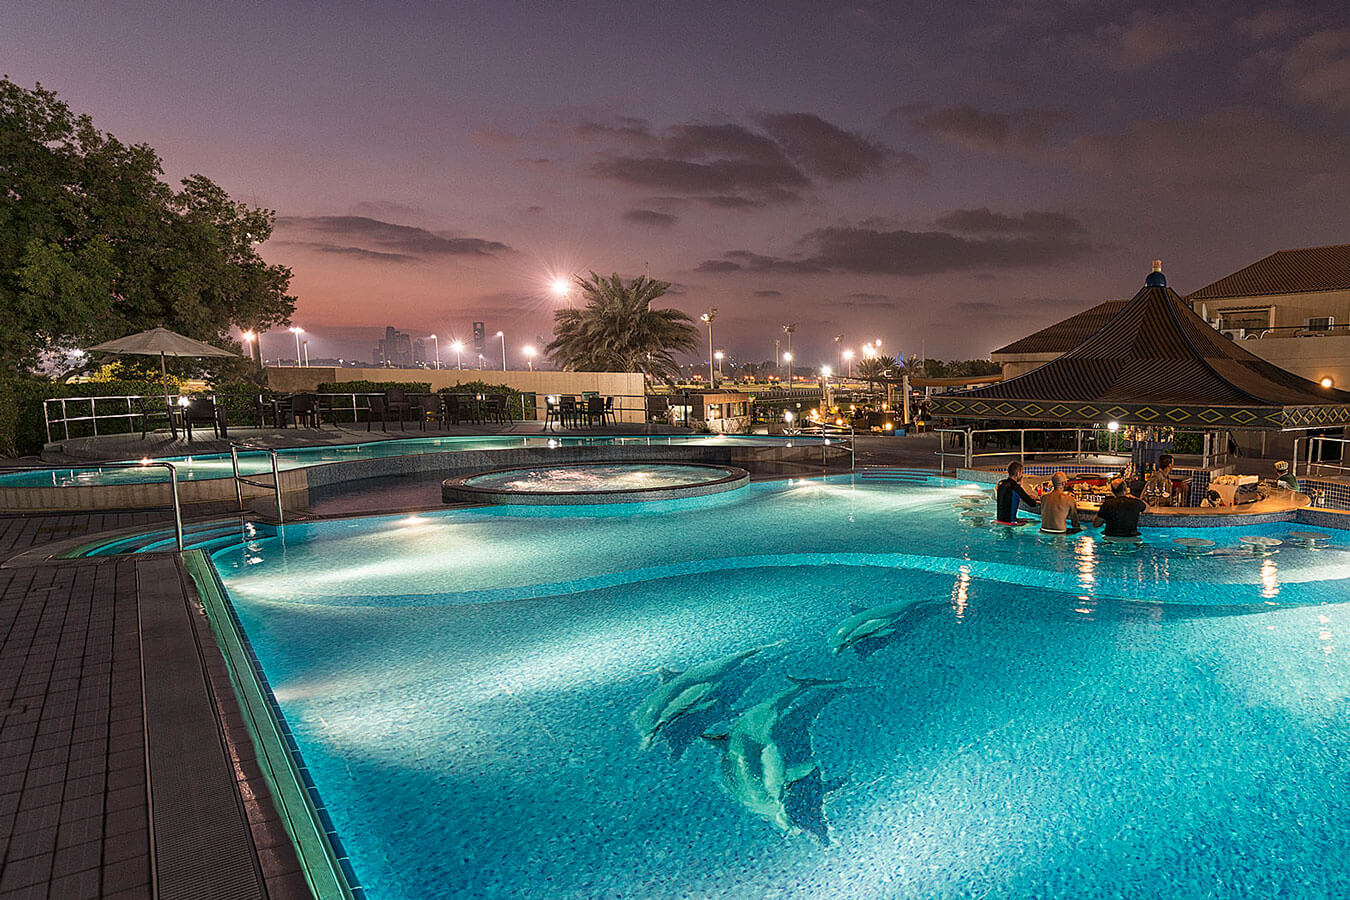 pool-4-abu-dhabi-city-golf-club.jpg